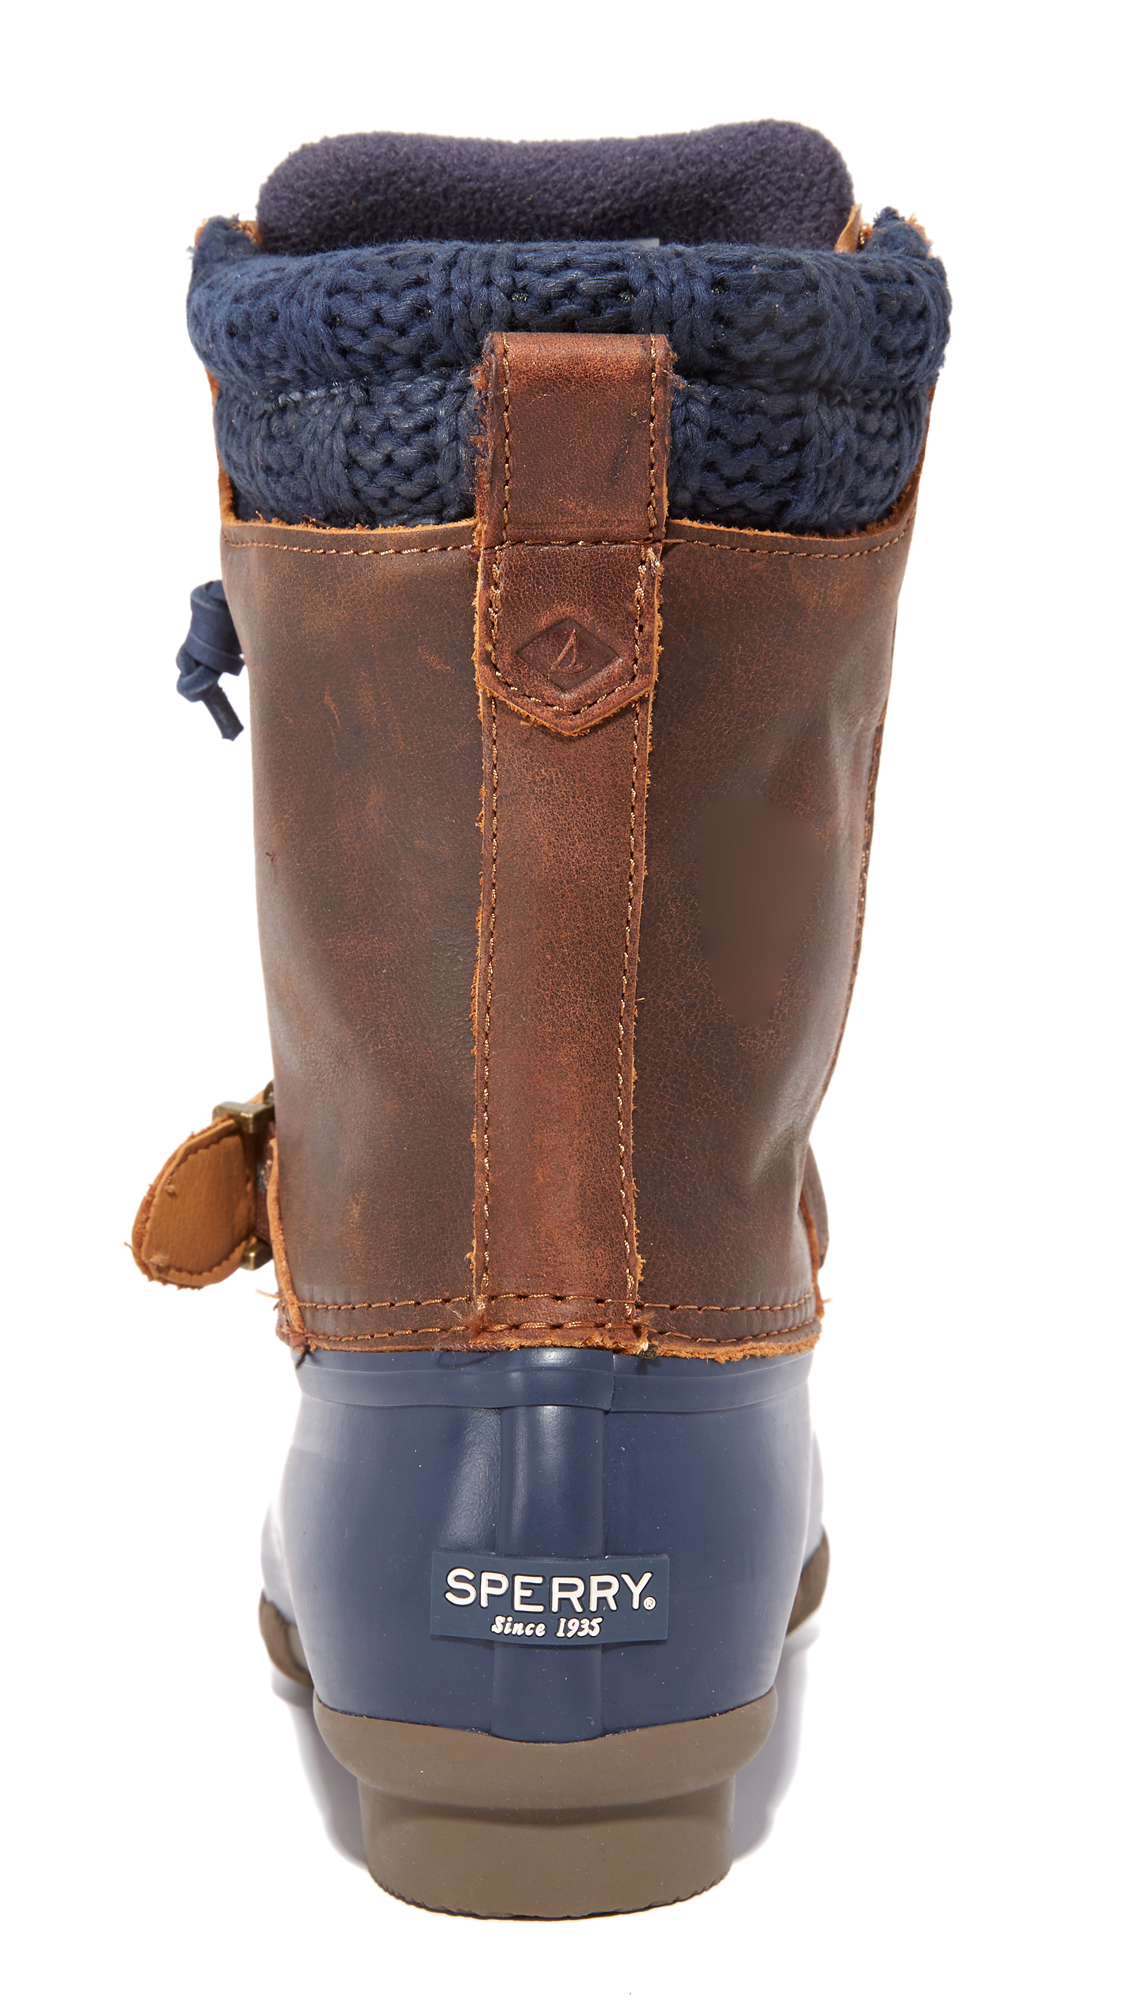 Sperry Top-Sider Rubber Saltwater Misty Boots